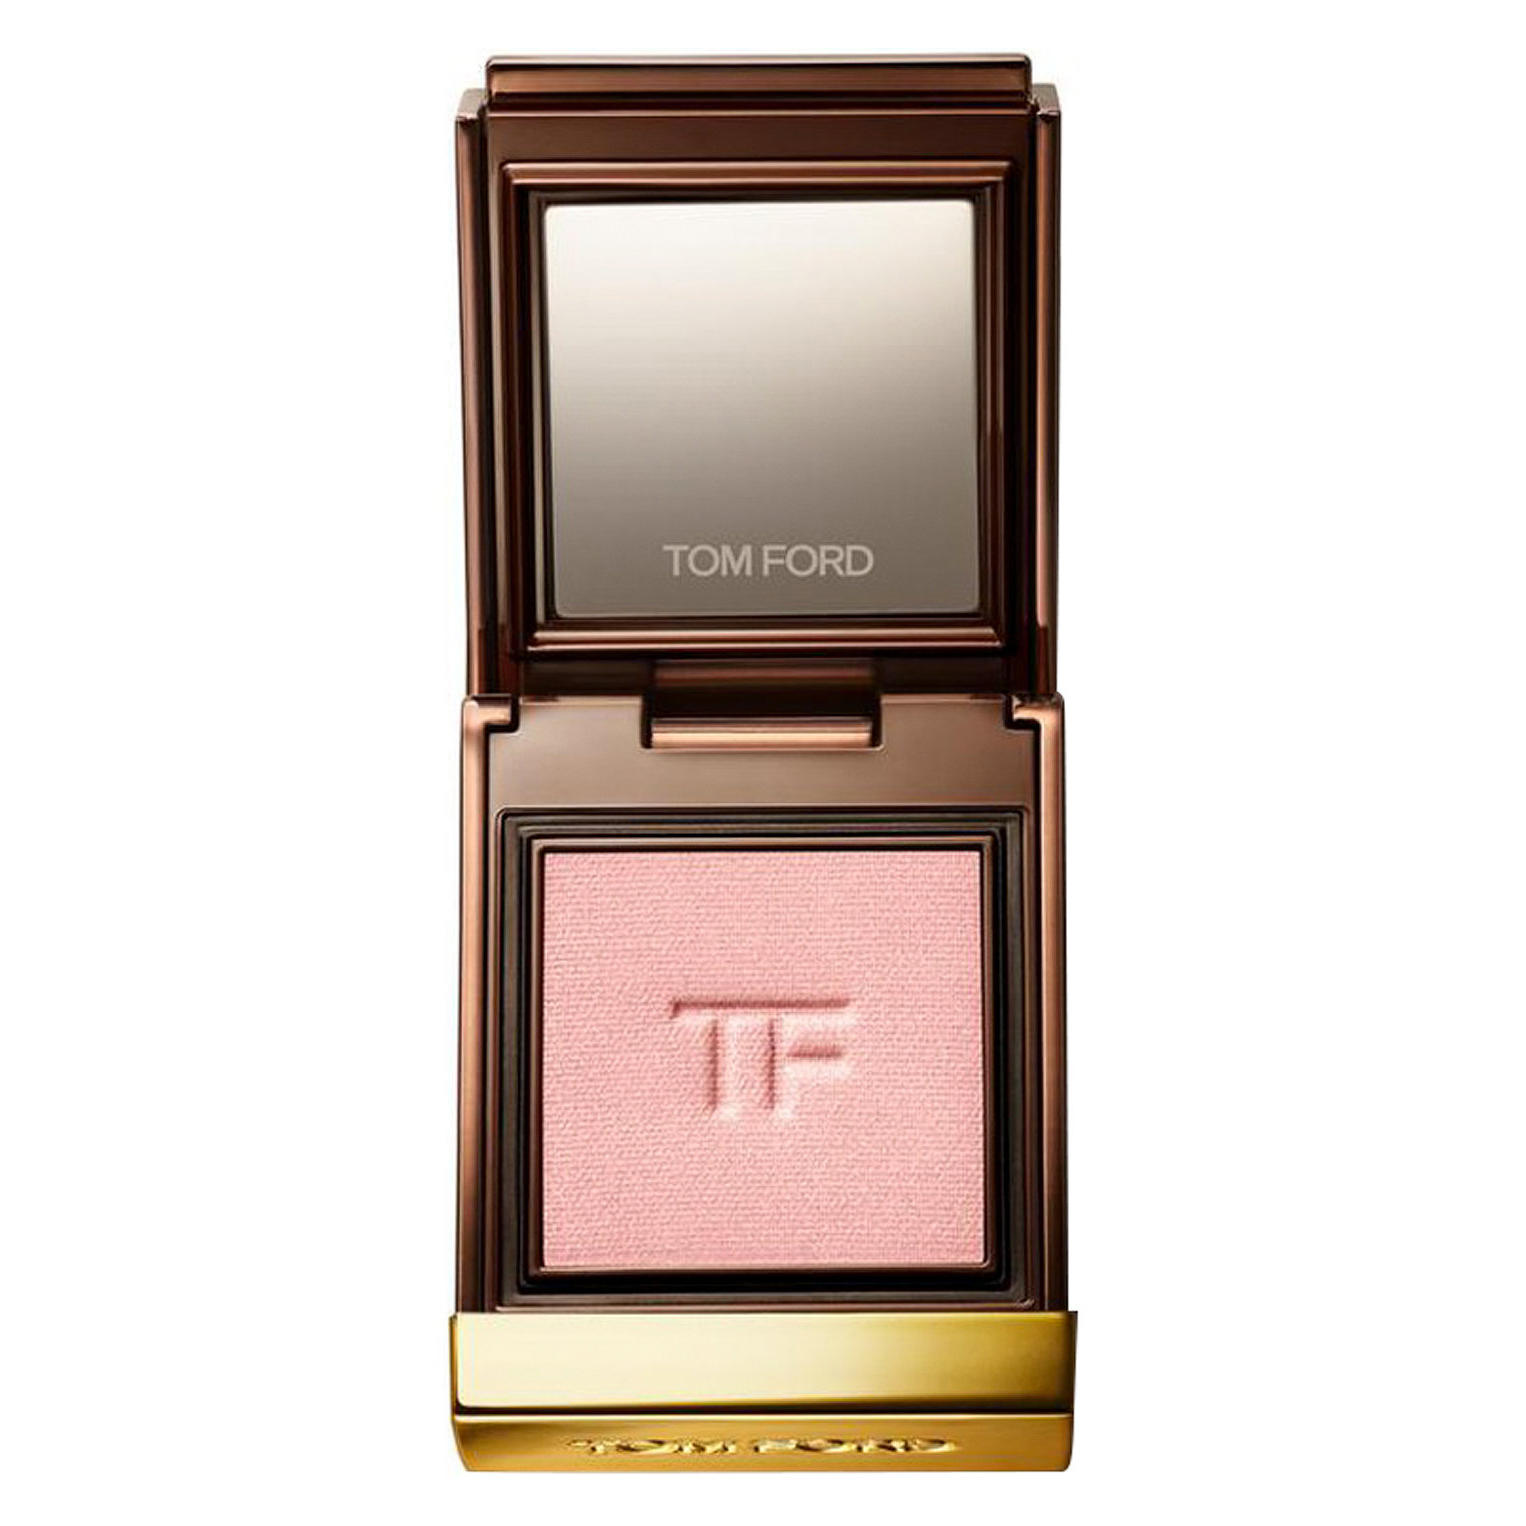 Tom Ford Private Shadow Exposure Sateen 01